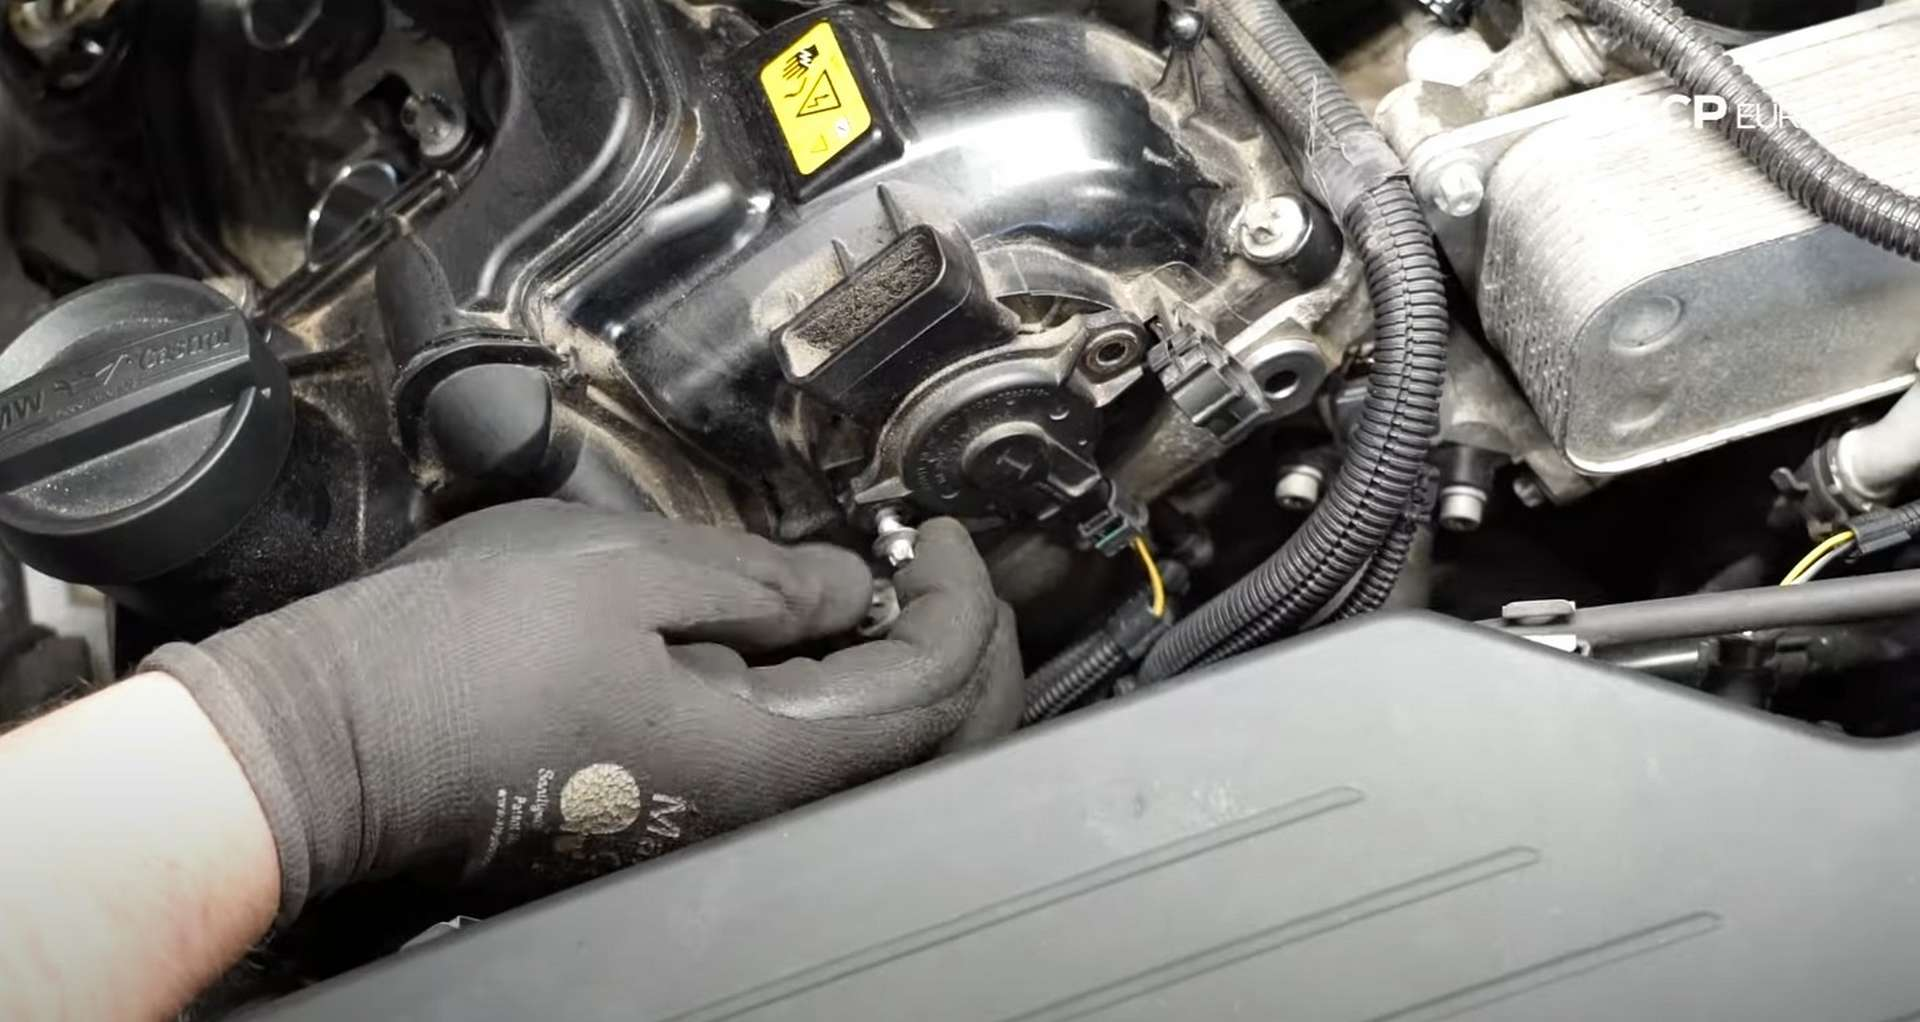 19-DIY-BMW-F30-Valve-Cover-Replacement_Removing-Mechanical-Components